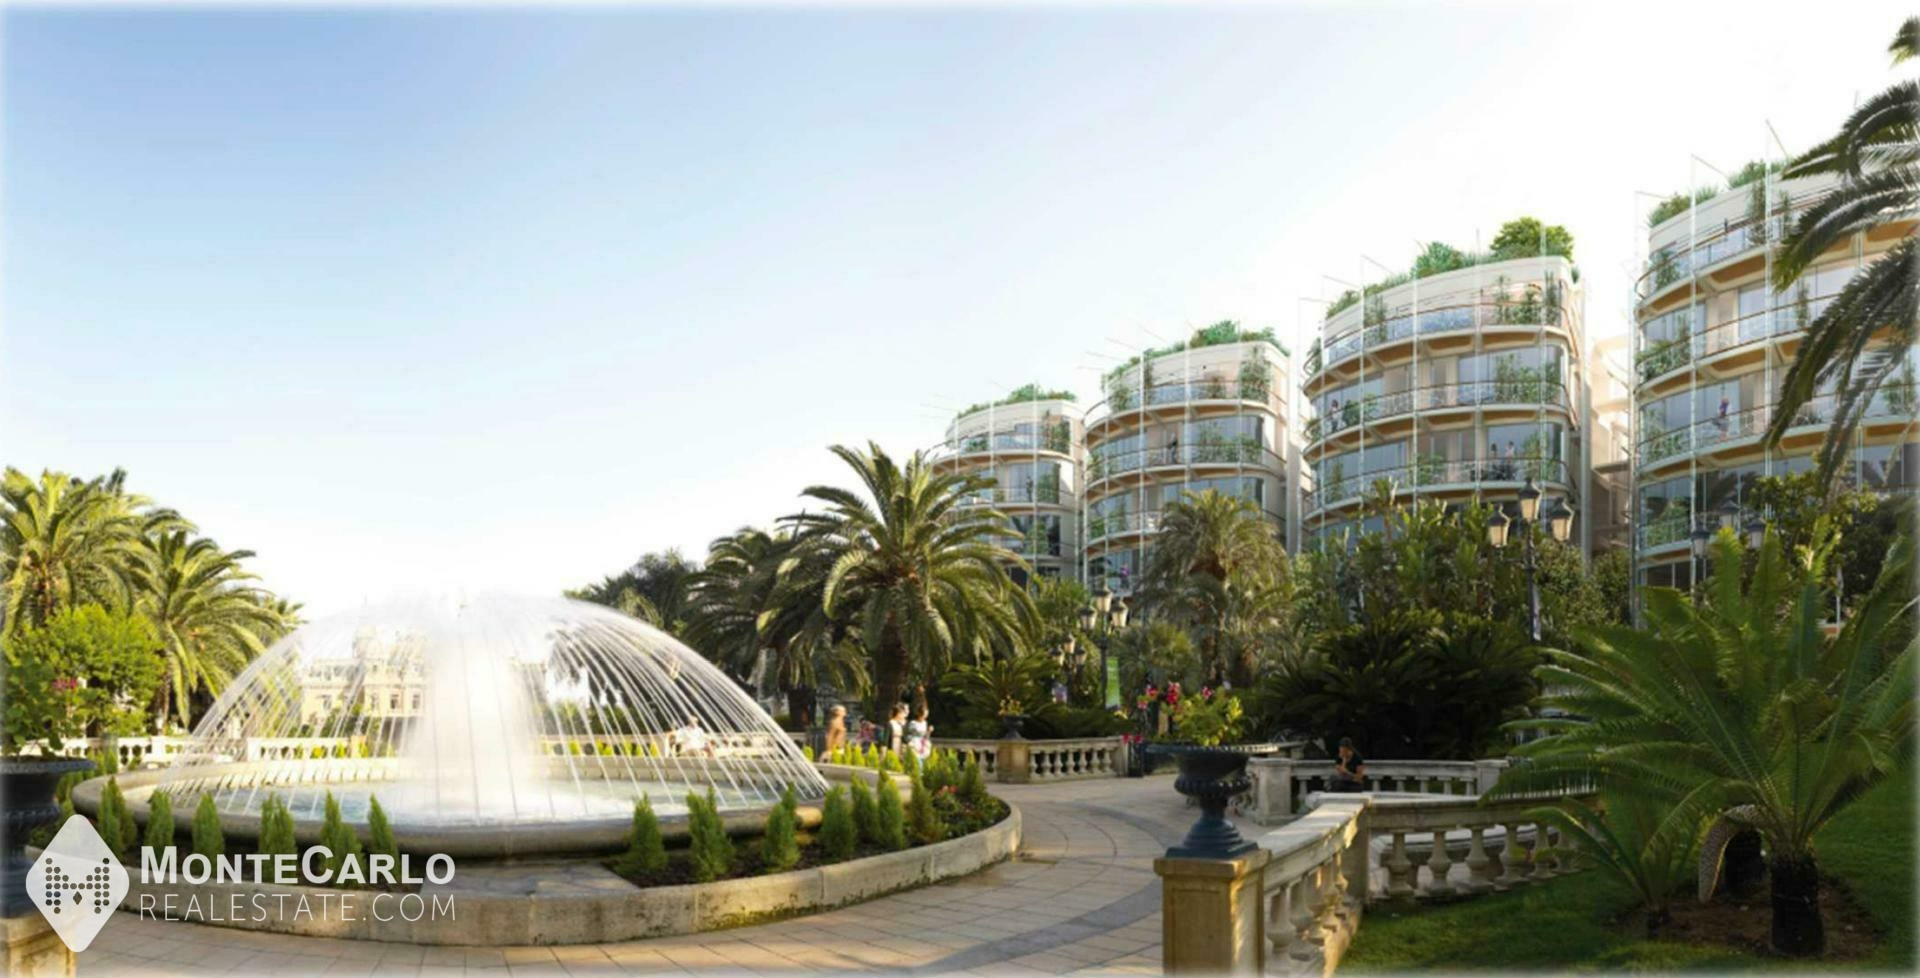 Rental One Monte-Carlo - Apartment / 5 rooms : 120 000 € | Monte-Carlo Real Estate [PPMCL9108]